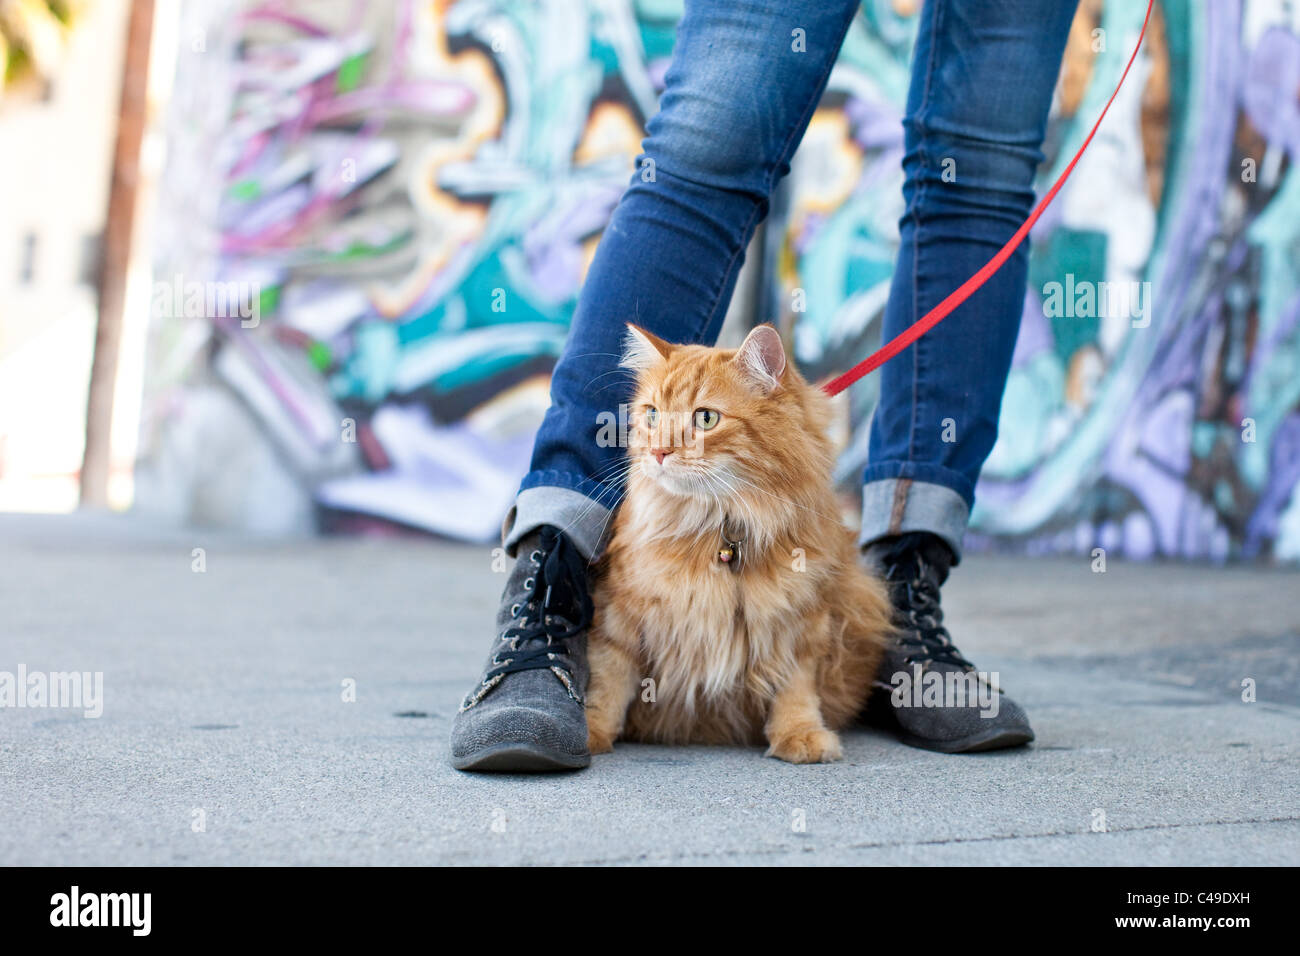 A small longhaired orange cat on a harness and leash sitting between his owner's feet in an urban neighborhood of Stock Foto